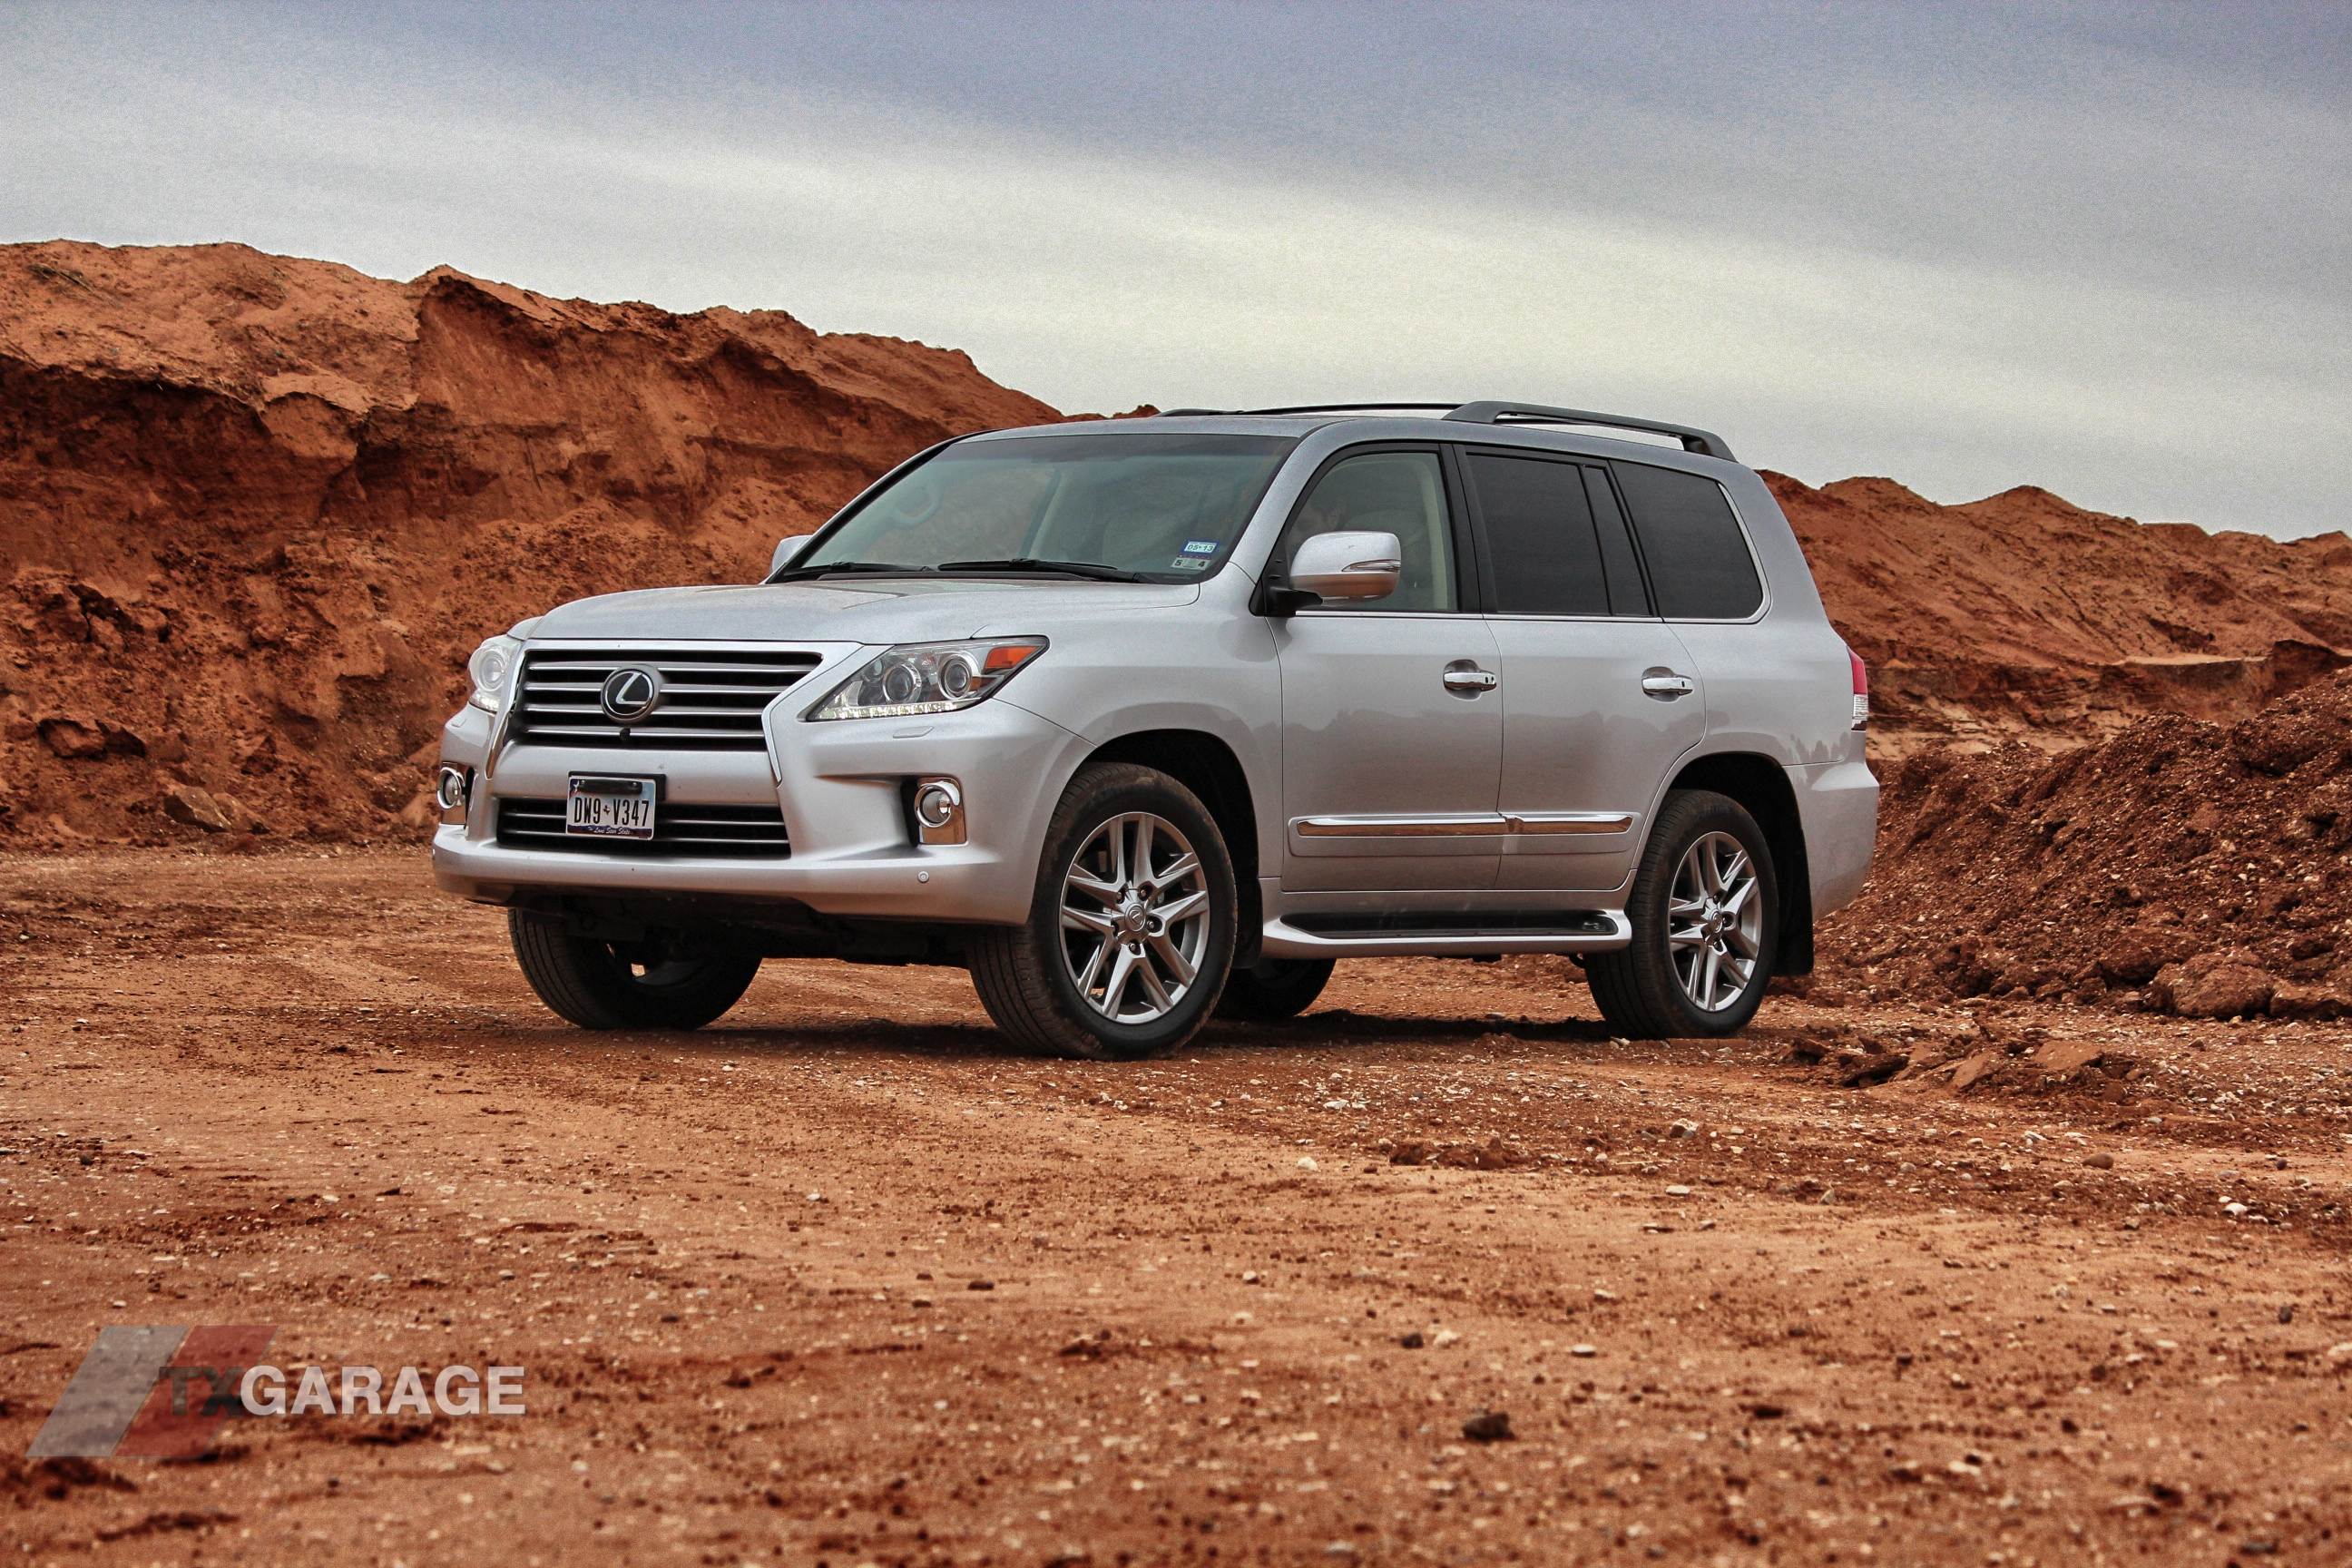 2013 Lexus LX 570 awd SUV by txGarage